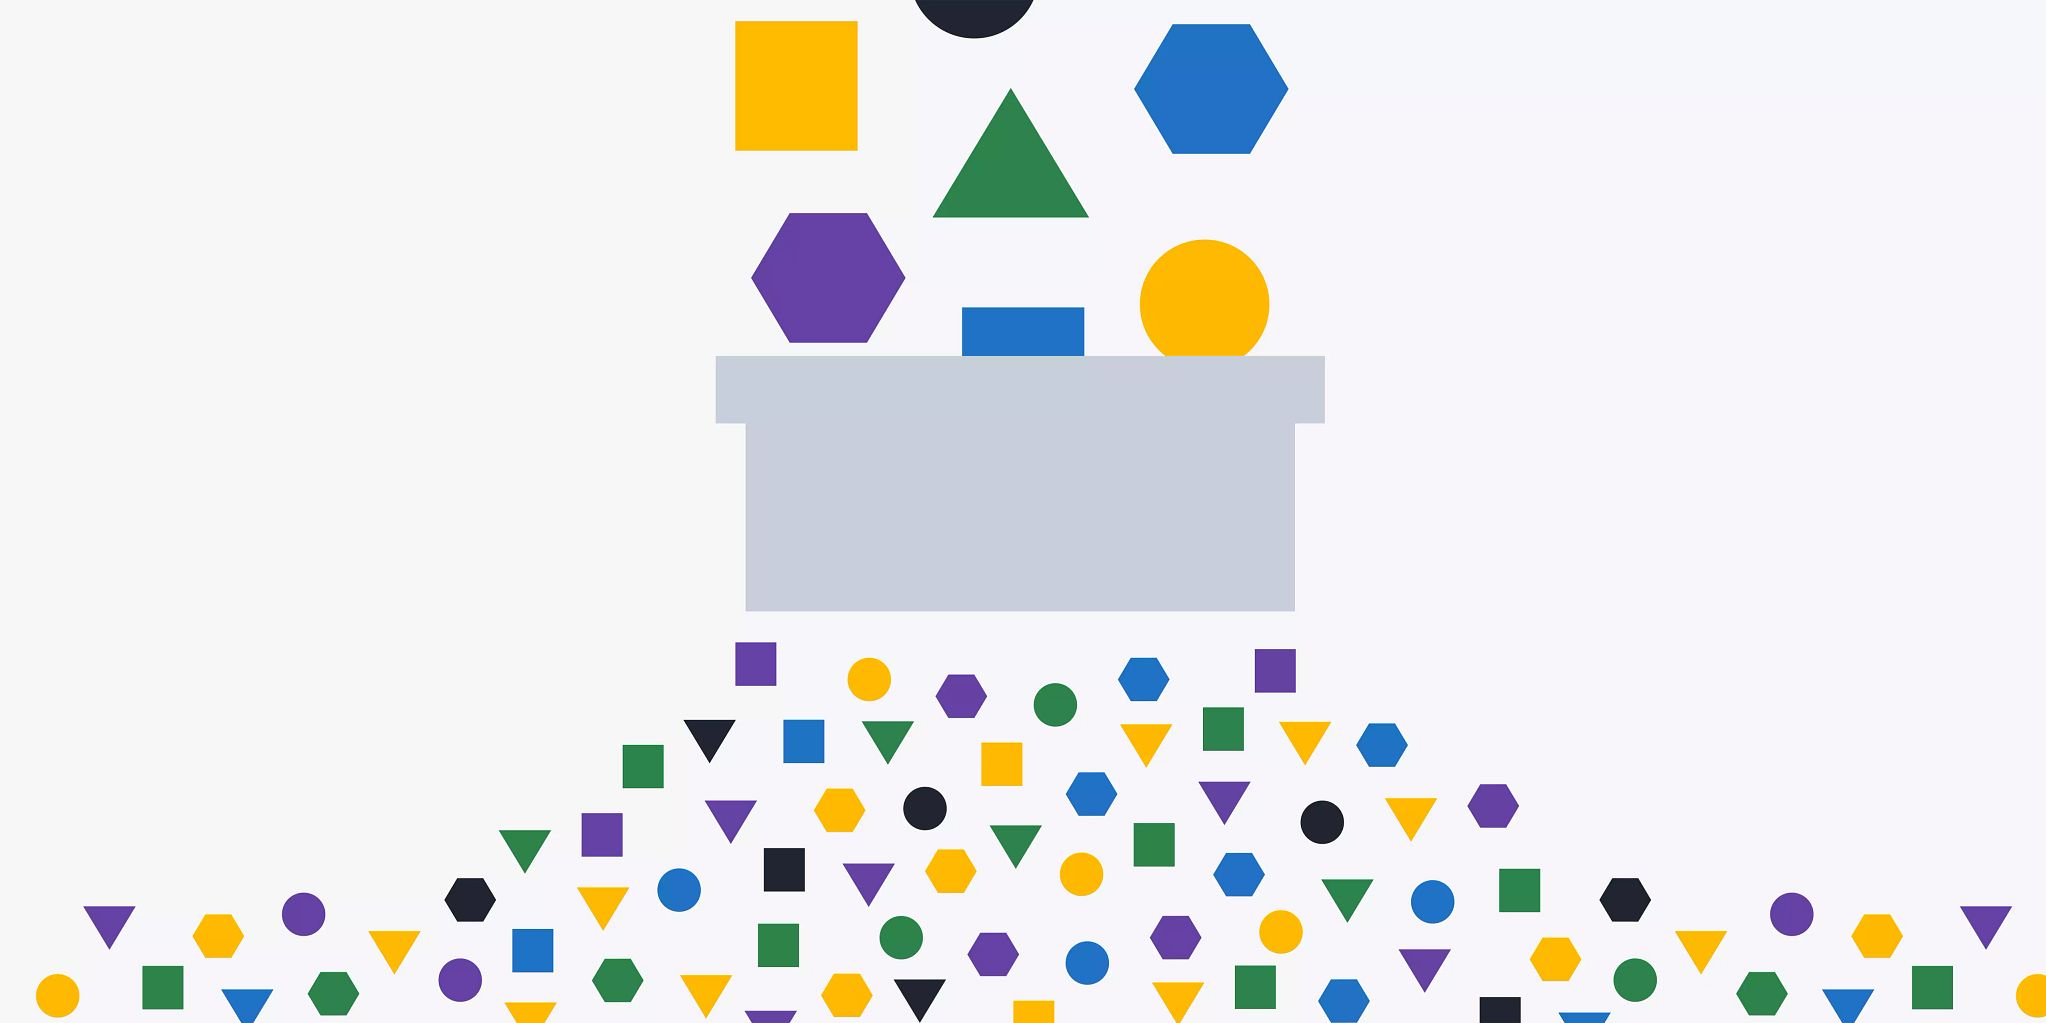 Larger colorful shapes are coming in the graphic from the top middle and funneling into a column in the middle where they flow out at smaller versions of each shape at the bottom.